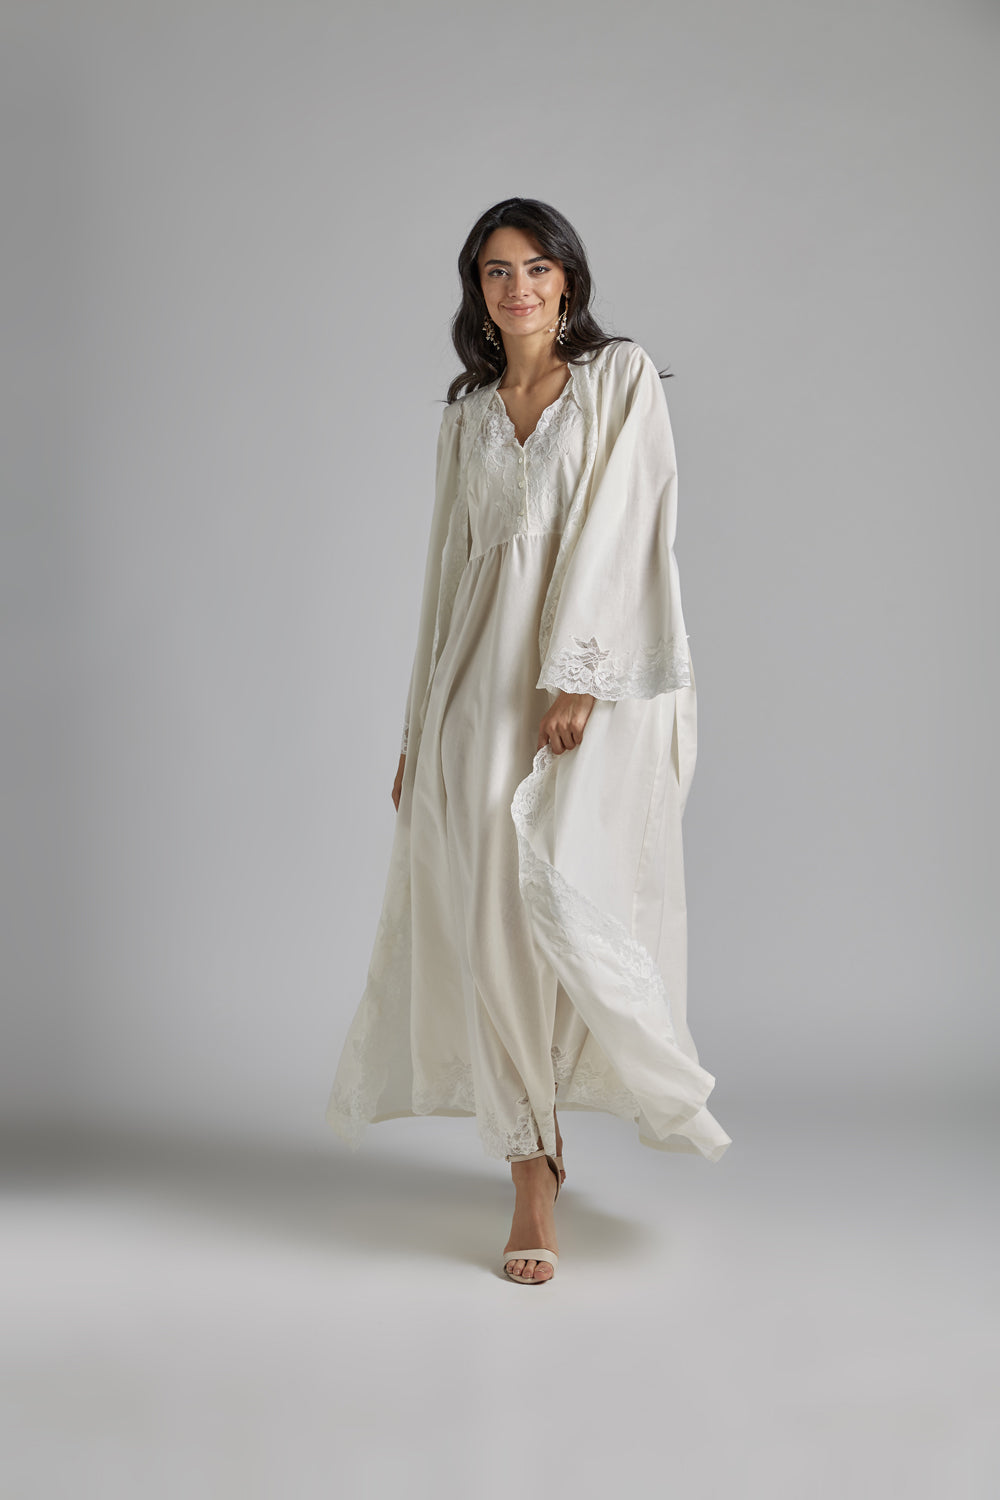 Cotton Vual Honey Robe Set - Reina